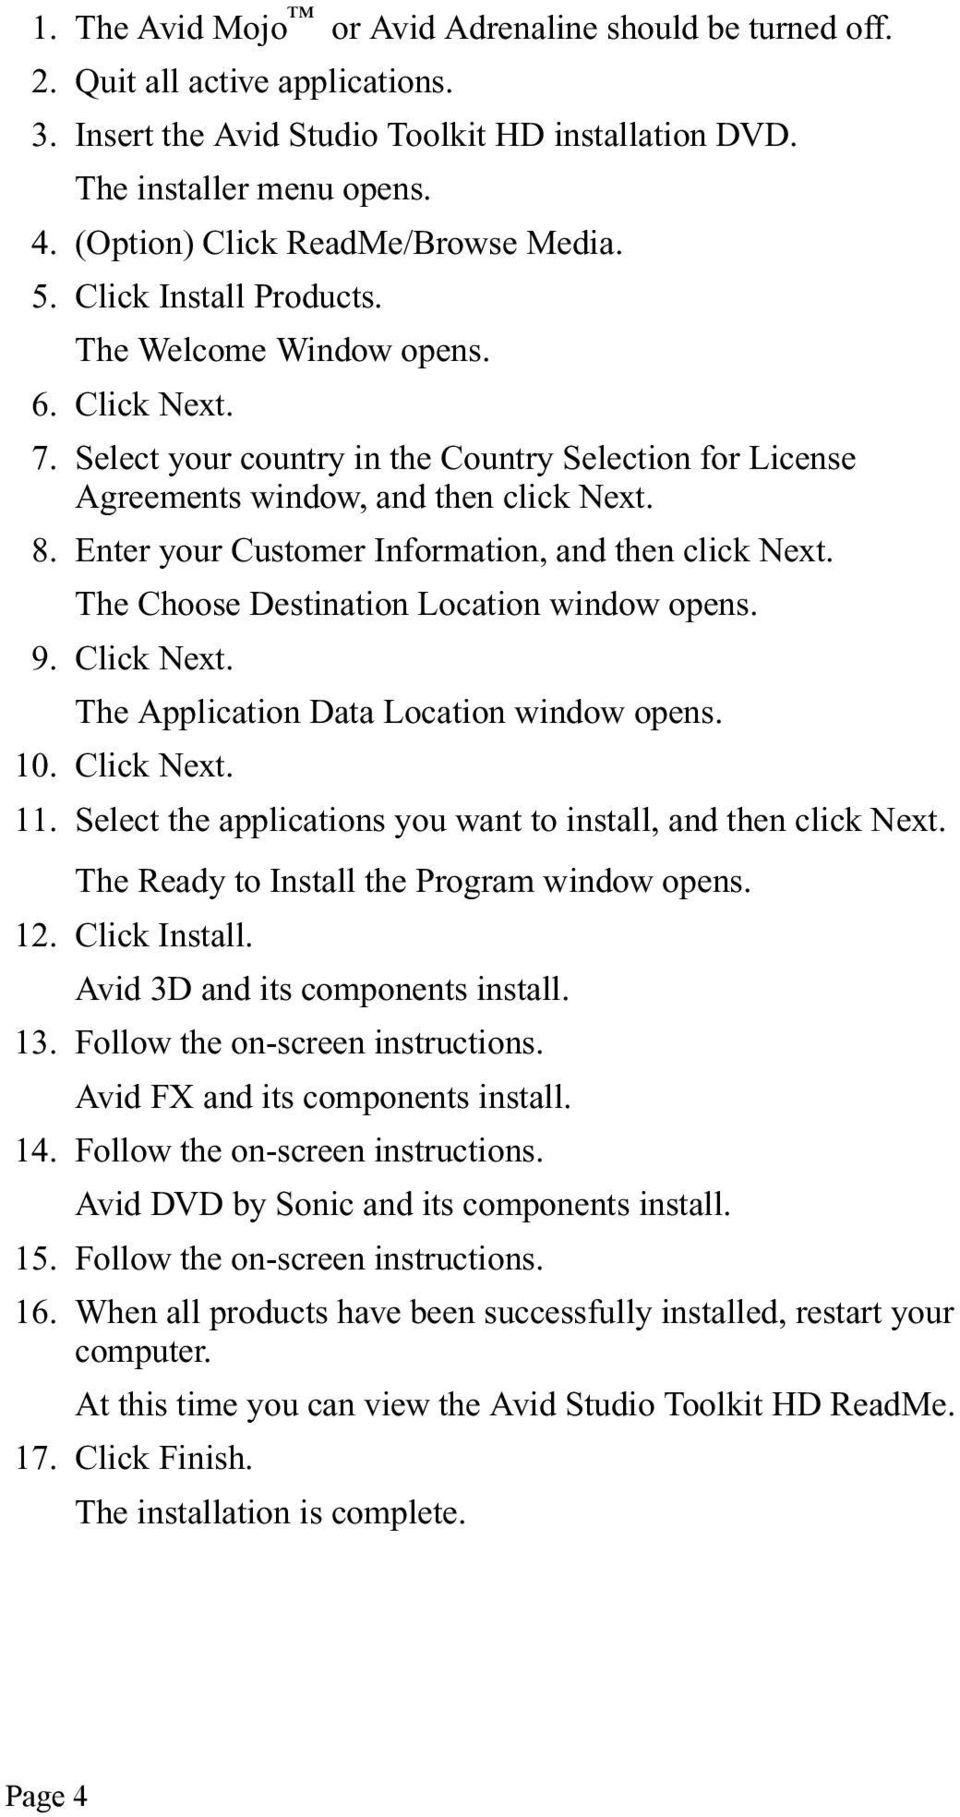 Select your country in the Country Selection for License Agreements window, and then click Next. 8. Enter your Customer Information, and then click Next. The Choose Destination Location window opens.